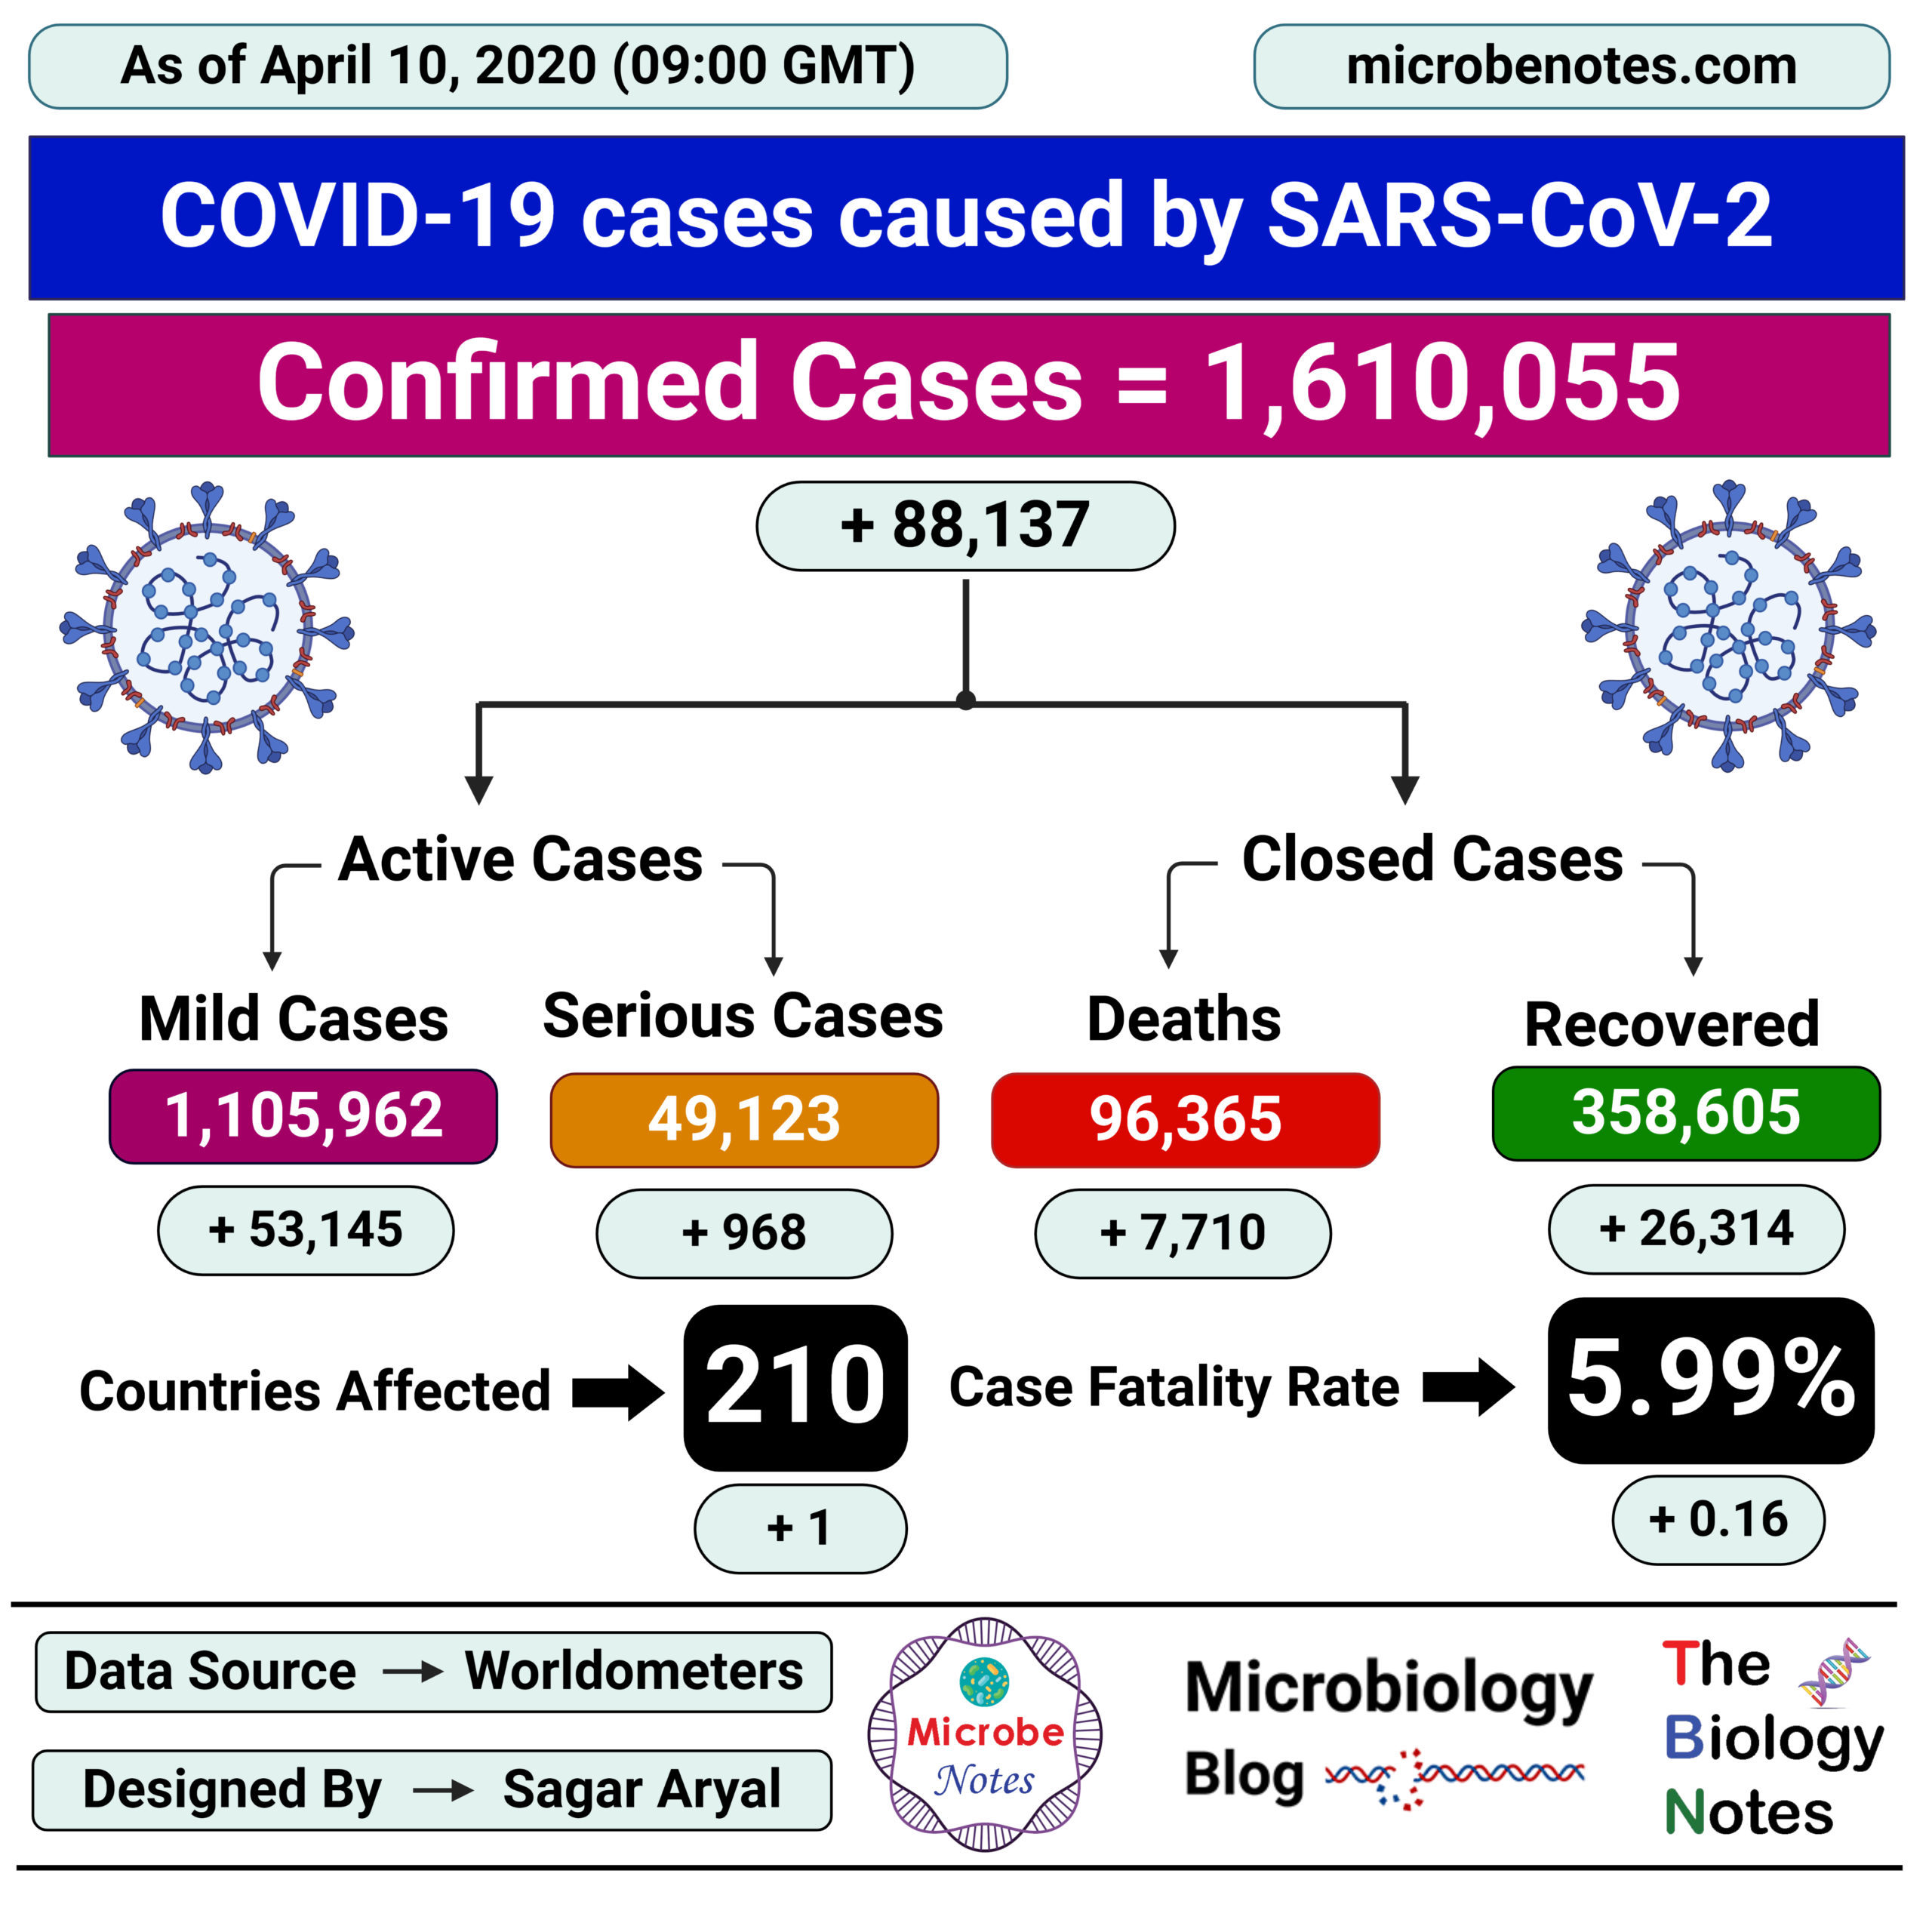 Epidemiology of COVID-19 caused by SARS-CoV-2 as of April 10, 2020